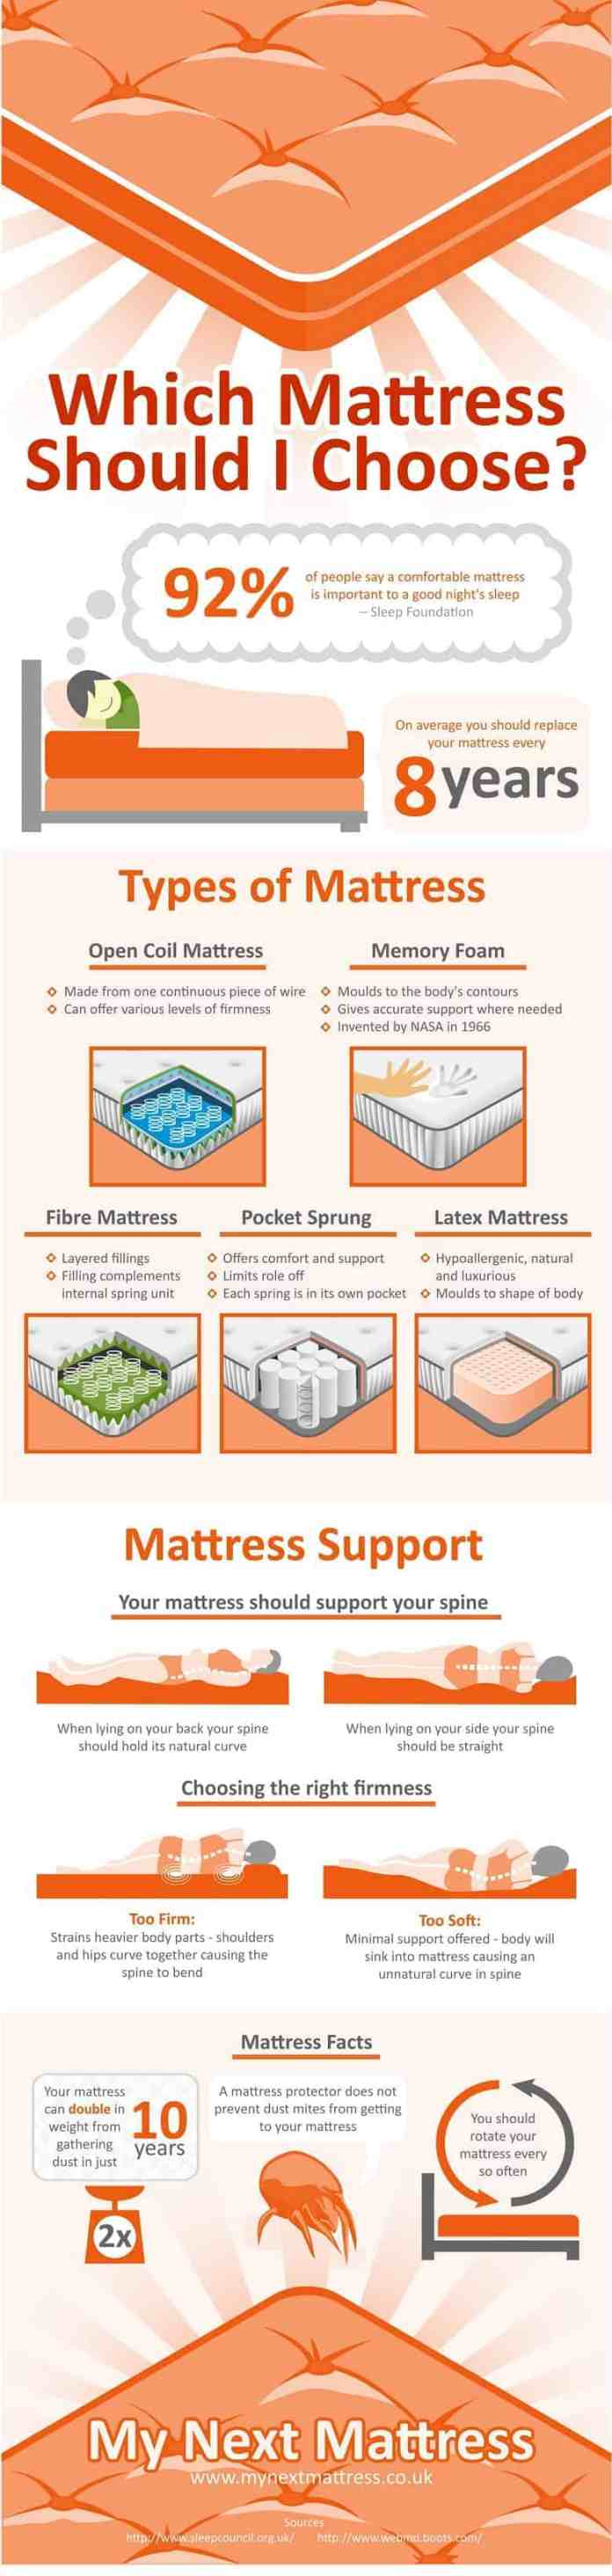 how to choose right mattress